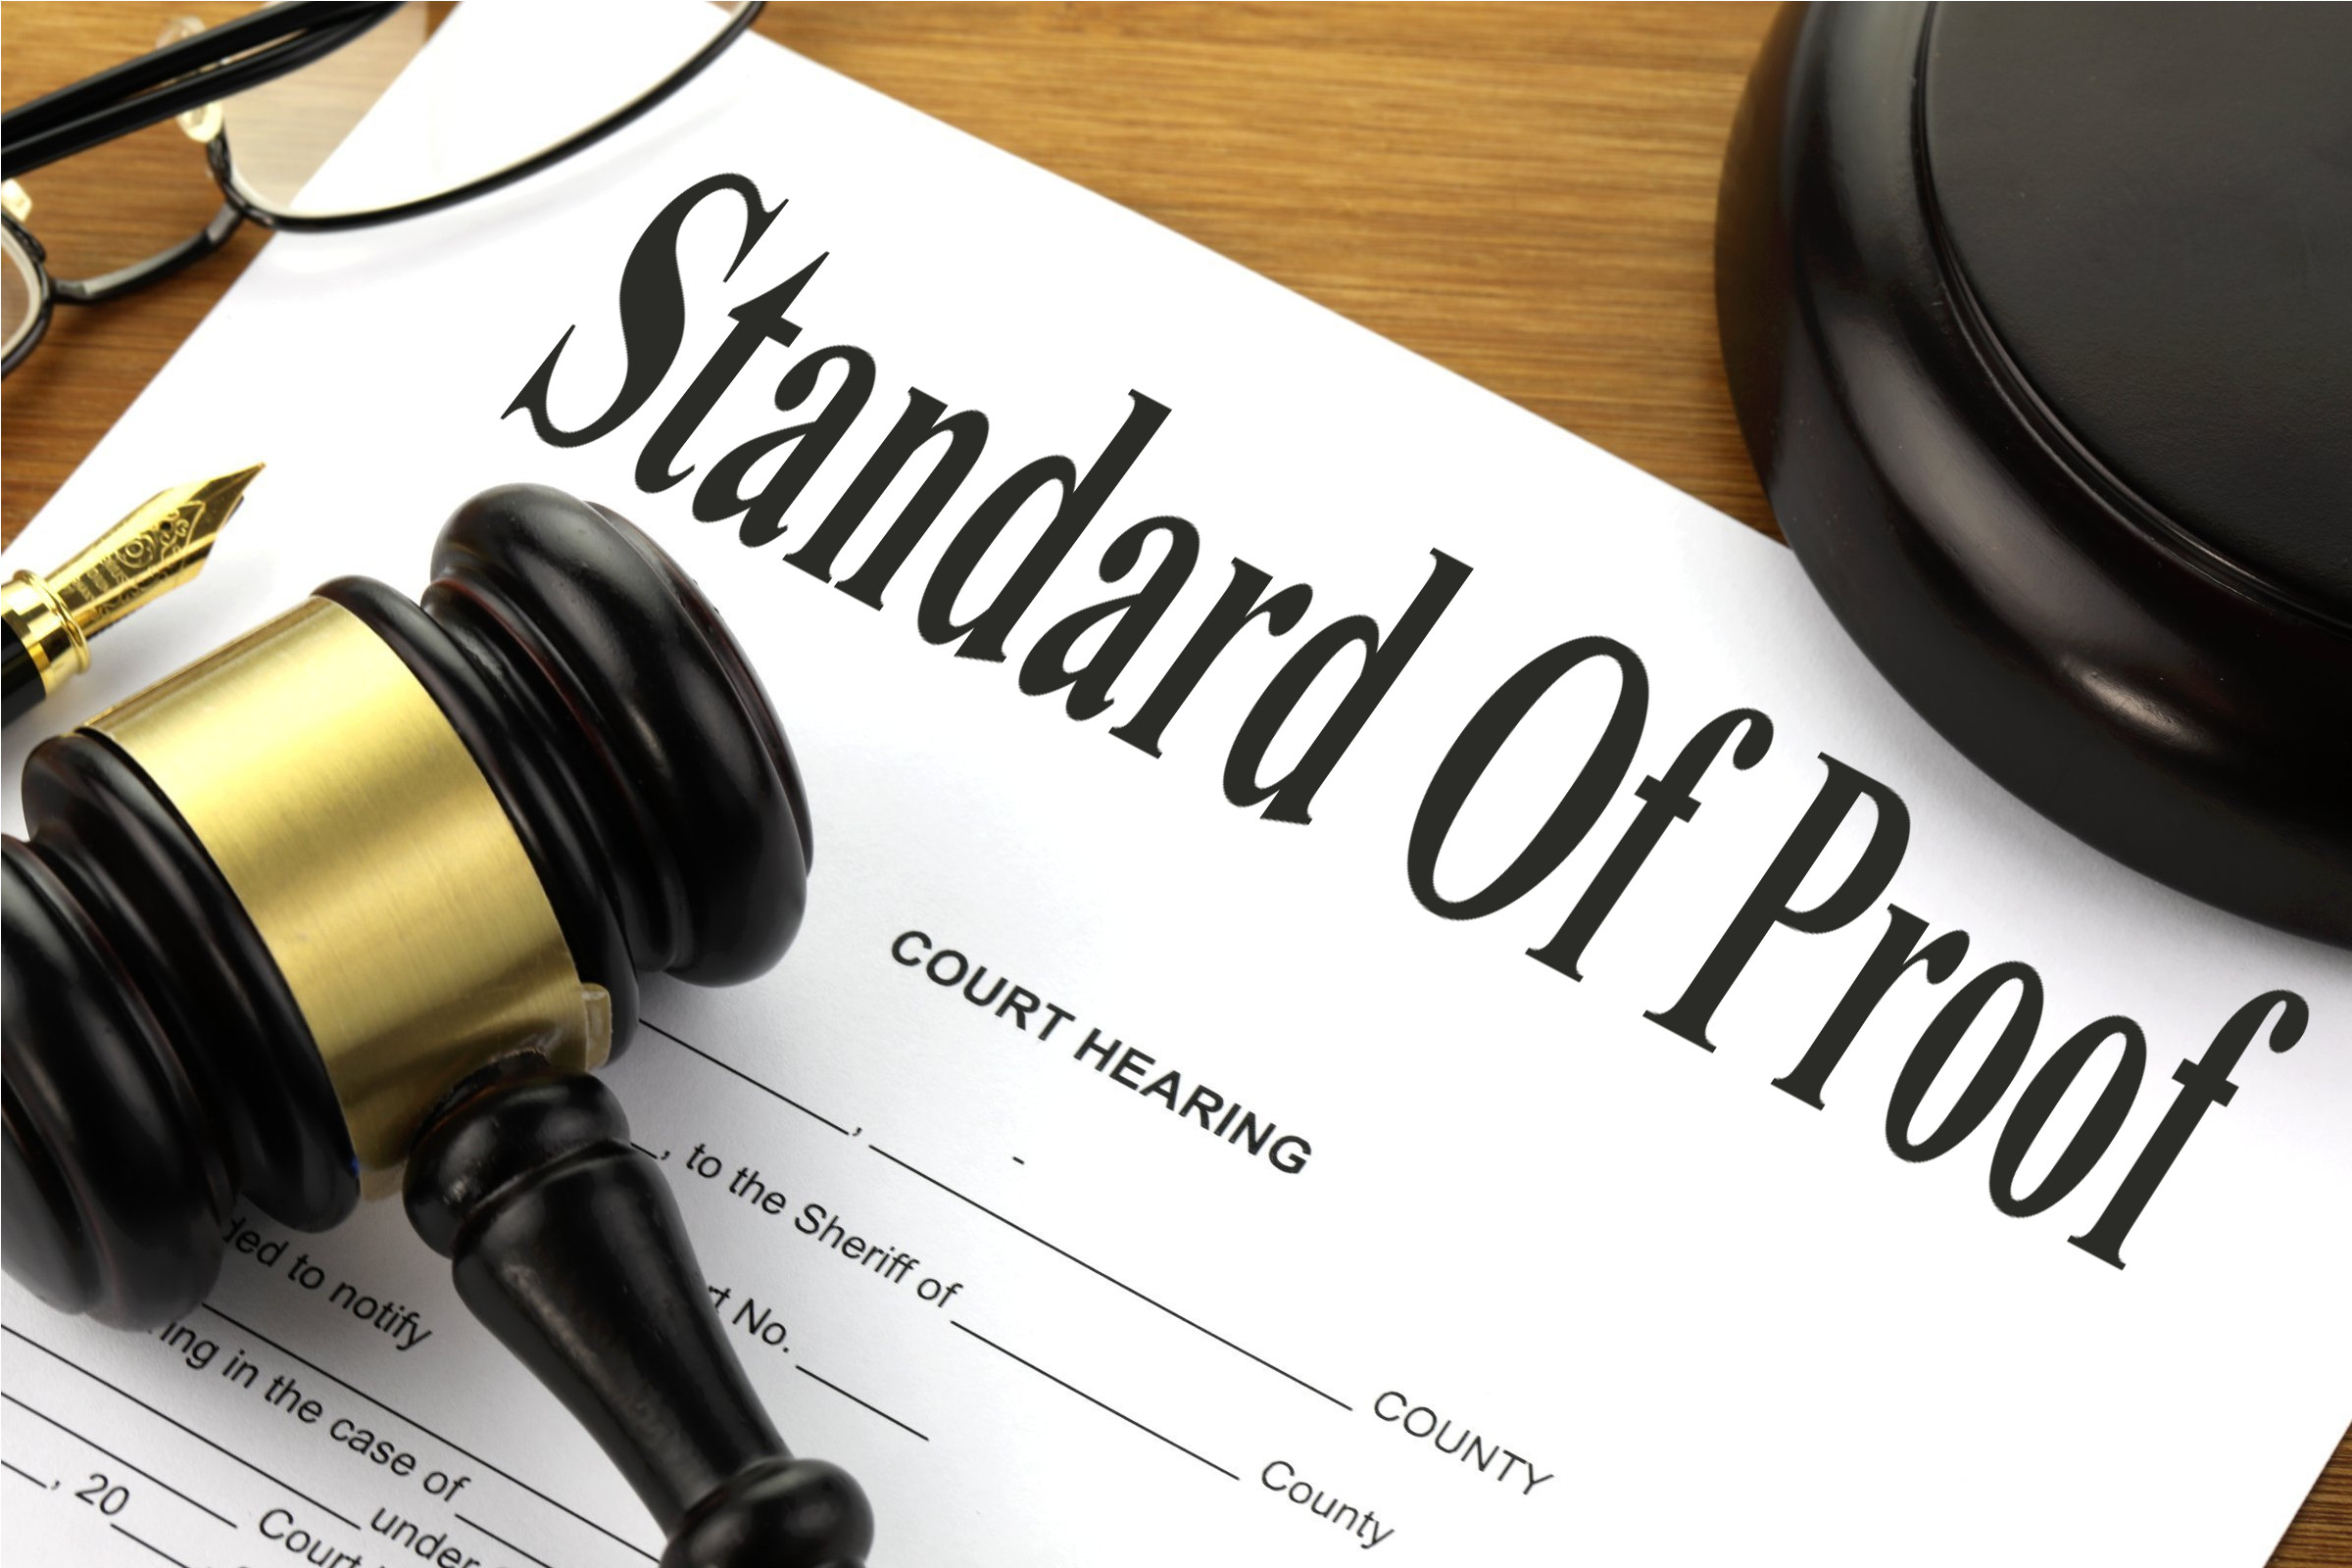 Standard Of Proof - Free of Charge Creative Commons Legal 1 image